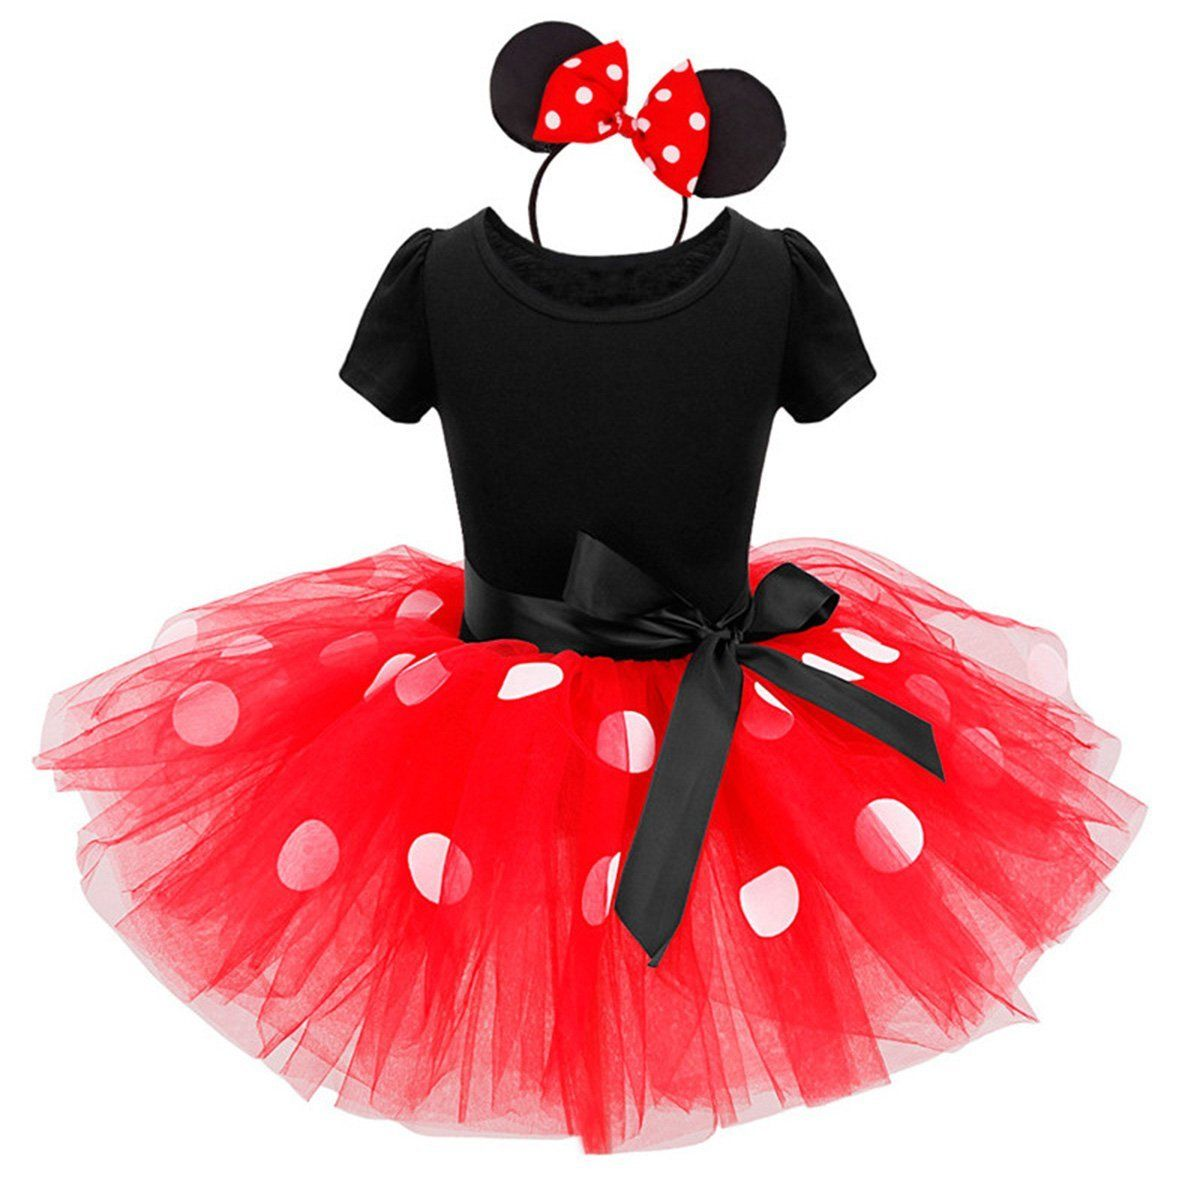 Baby girl dress Party Costume Ballet Dresses Kids Tutu Leotard Dance dress Headwear clothes set Polka Dot Bowknot Minnie dresses